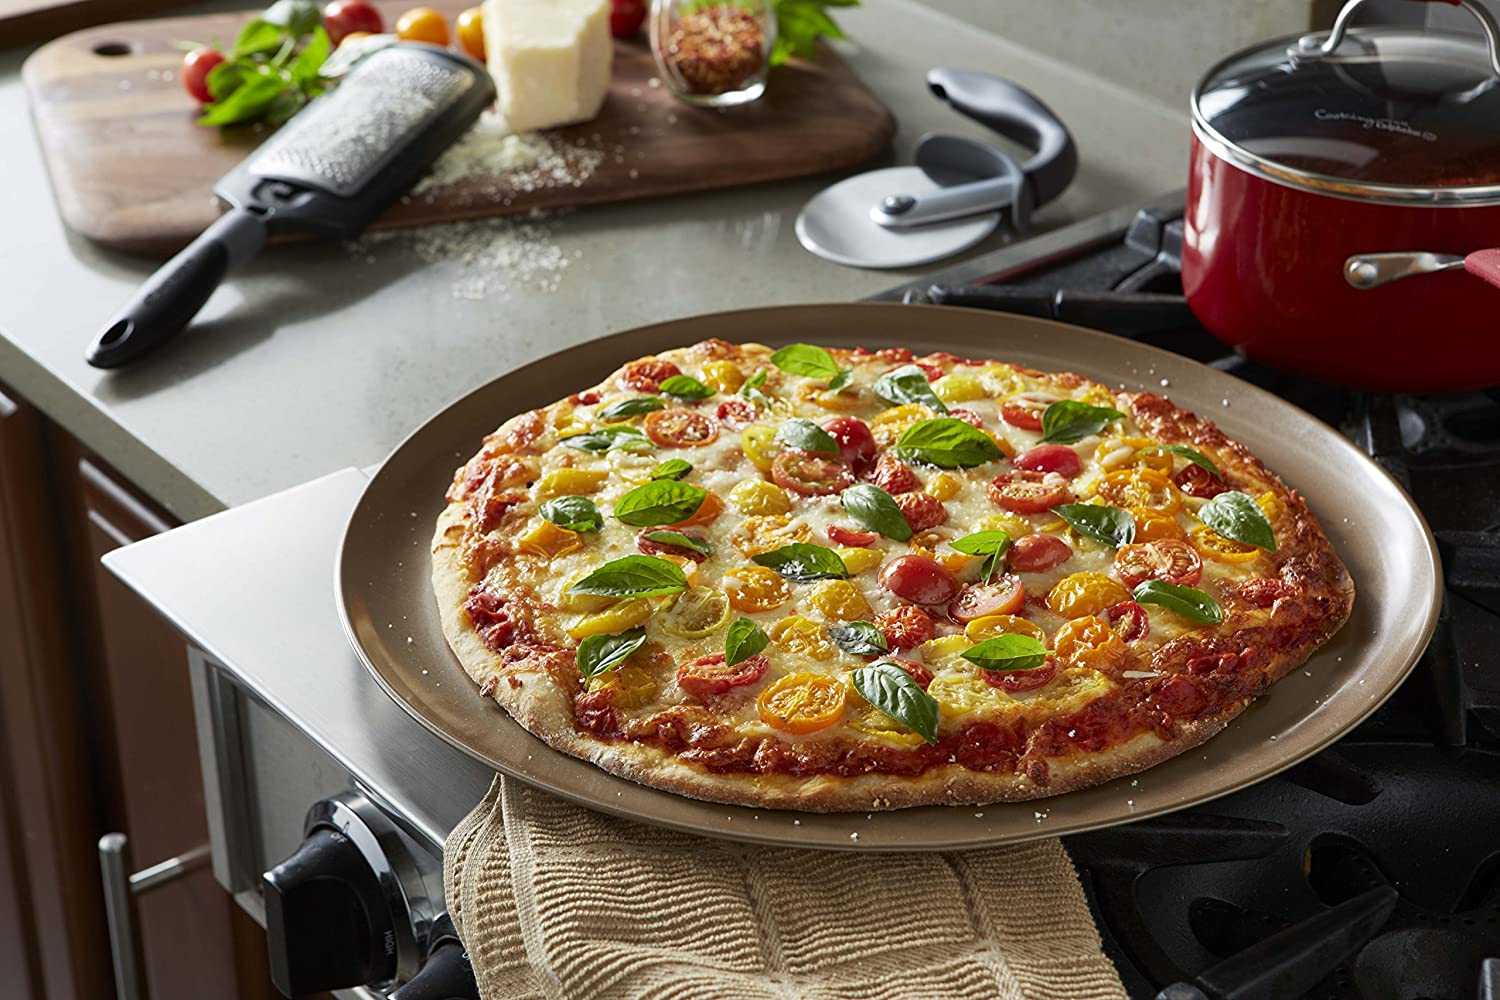 Calphalon 16-Inch Nonstick Pizza Pan Toffee